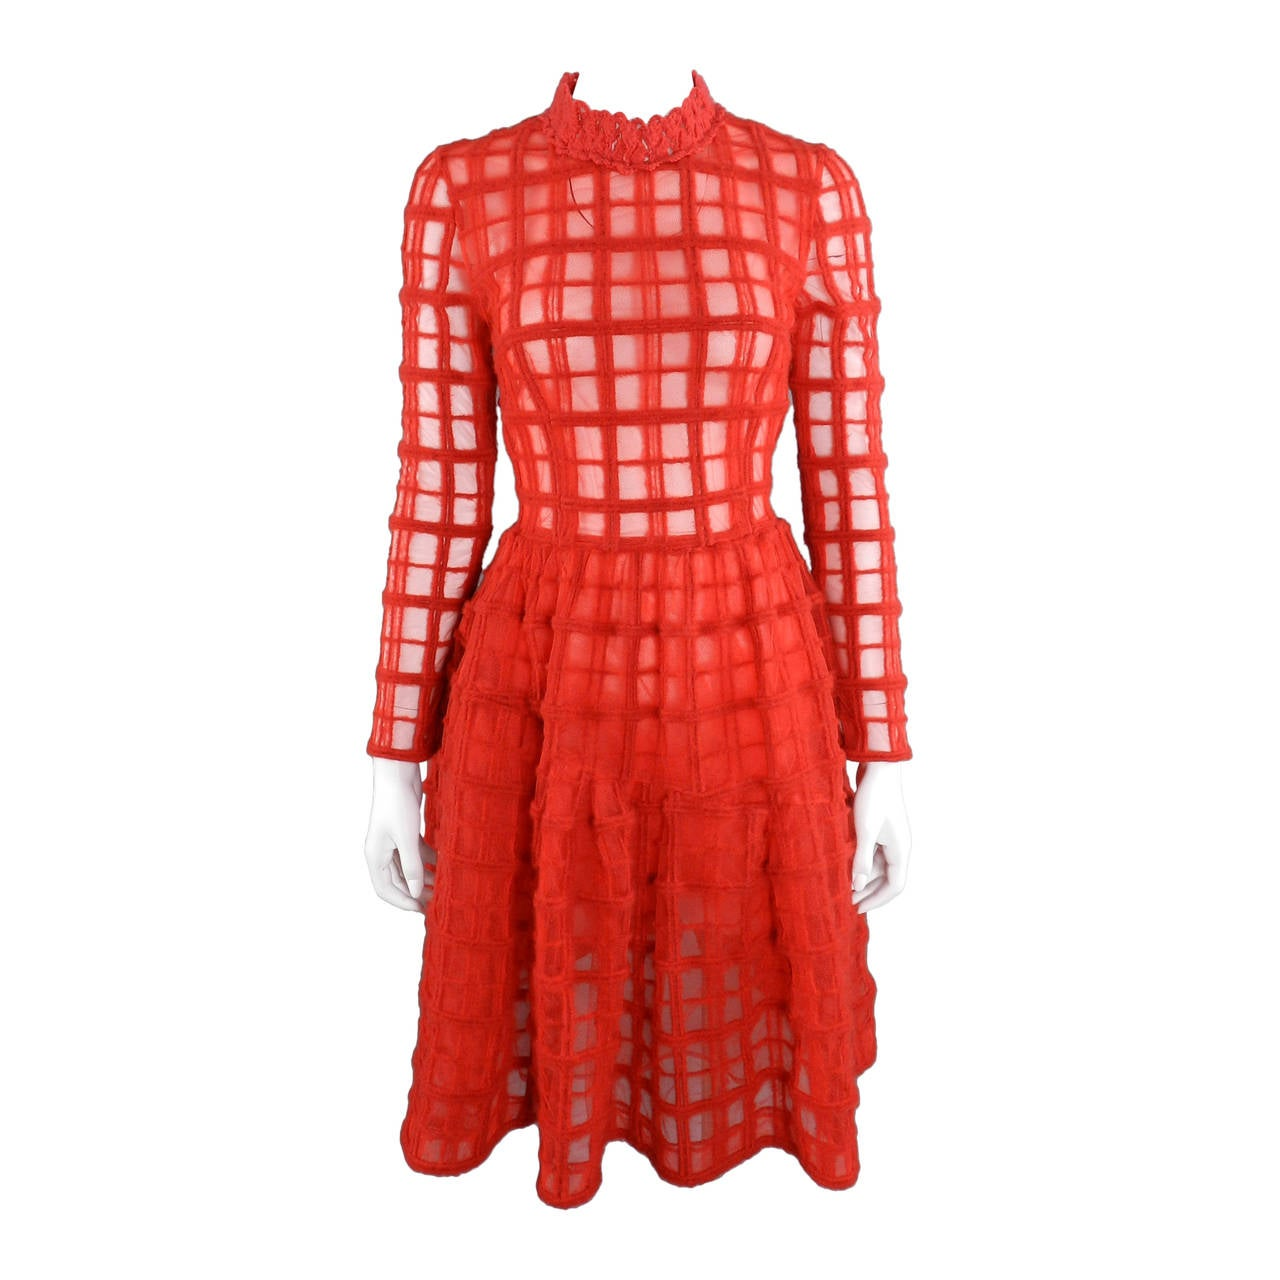 simone rocha fall 2014 red runway dress at 1stdibs